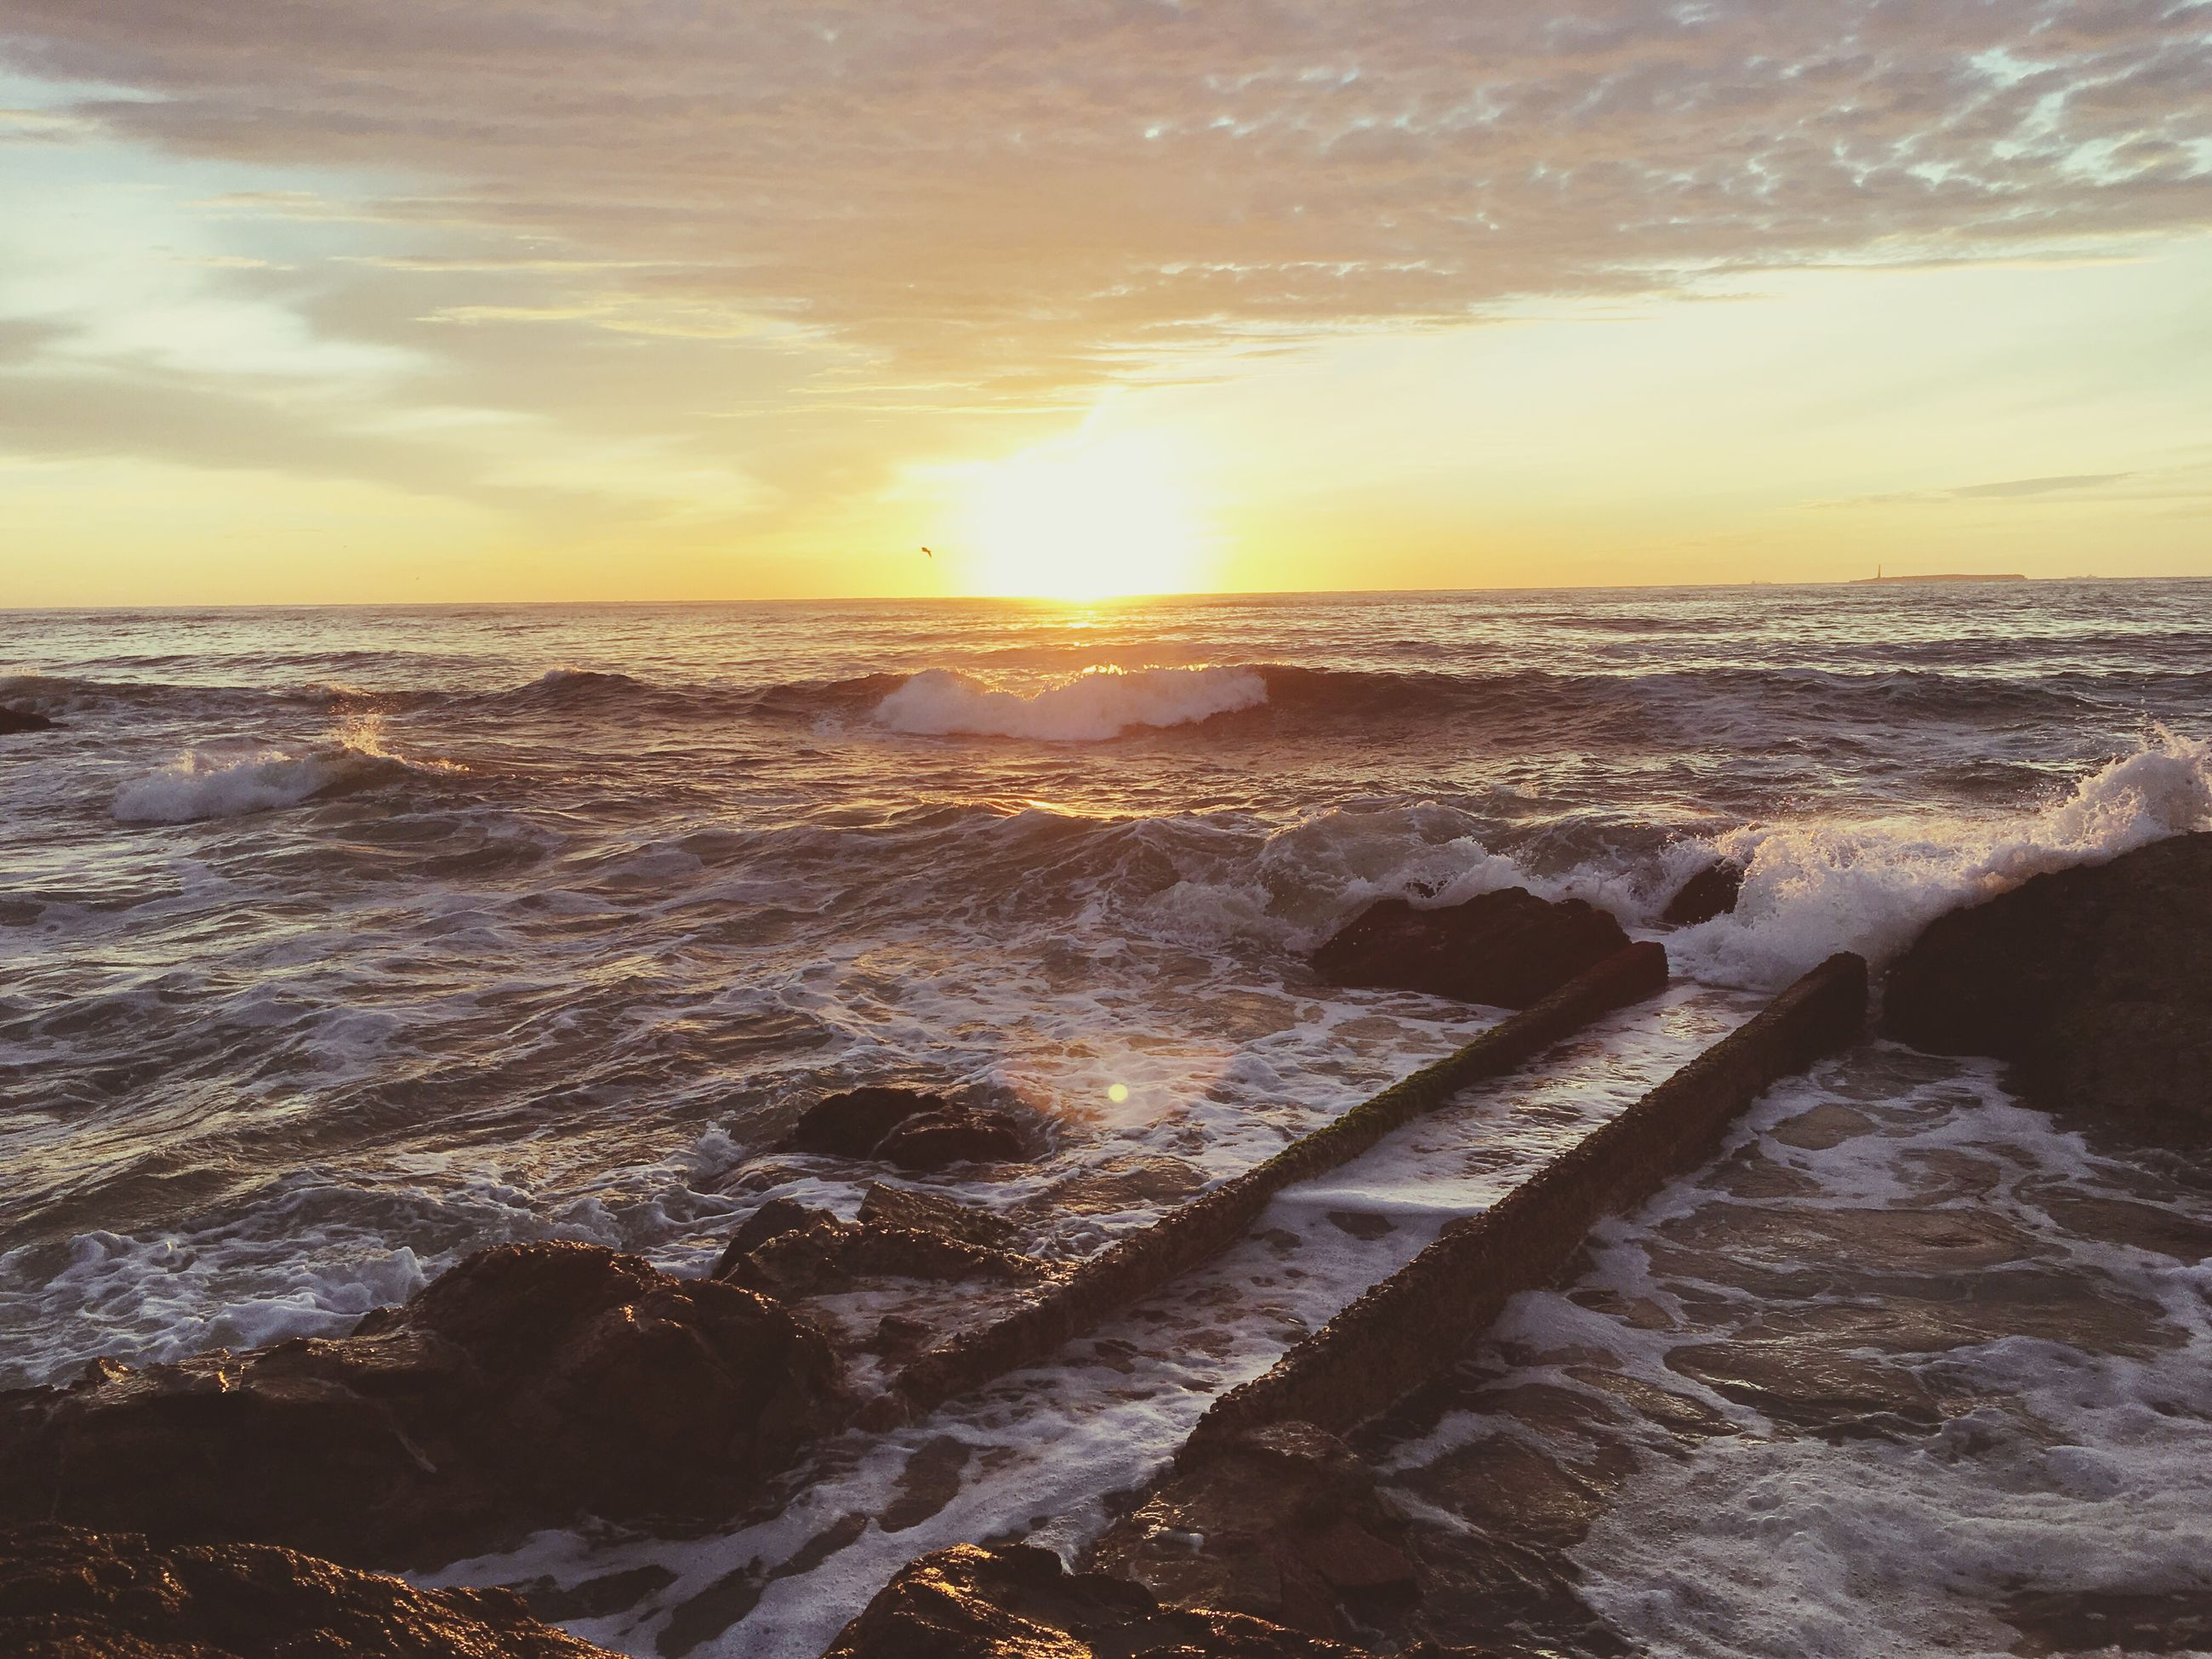 sea, sunset, water, horizon over water, scenics, beauty in nature, beach, wave, tranquil scene, sky, tranquility, shore, nature, orange color, sun, idyllic, rock - object, surf, cloud - sky, sunlight